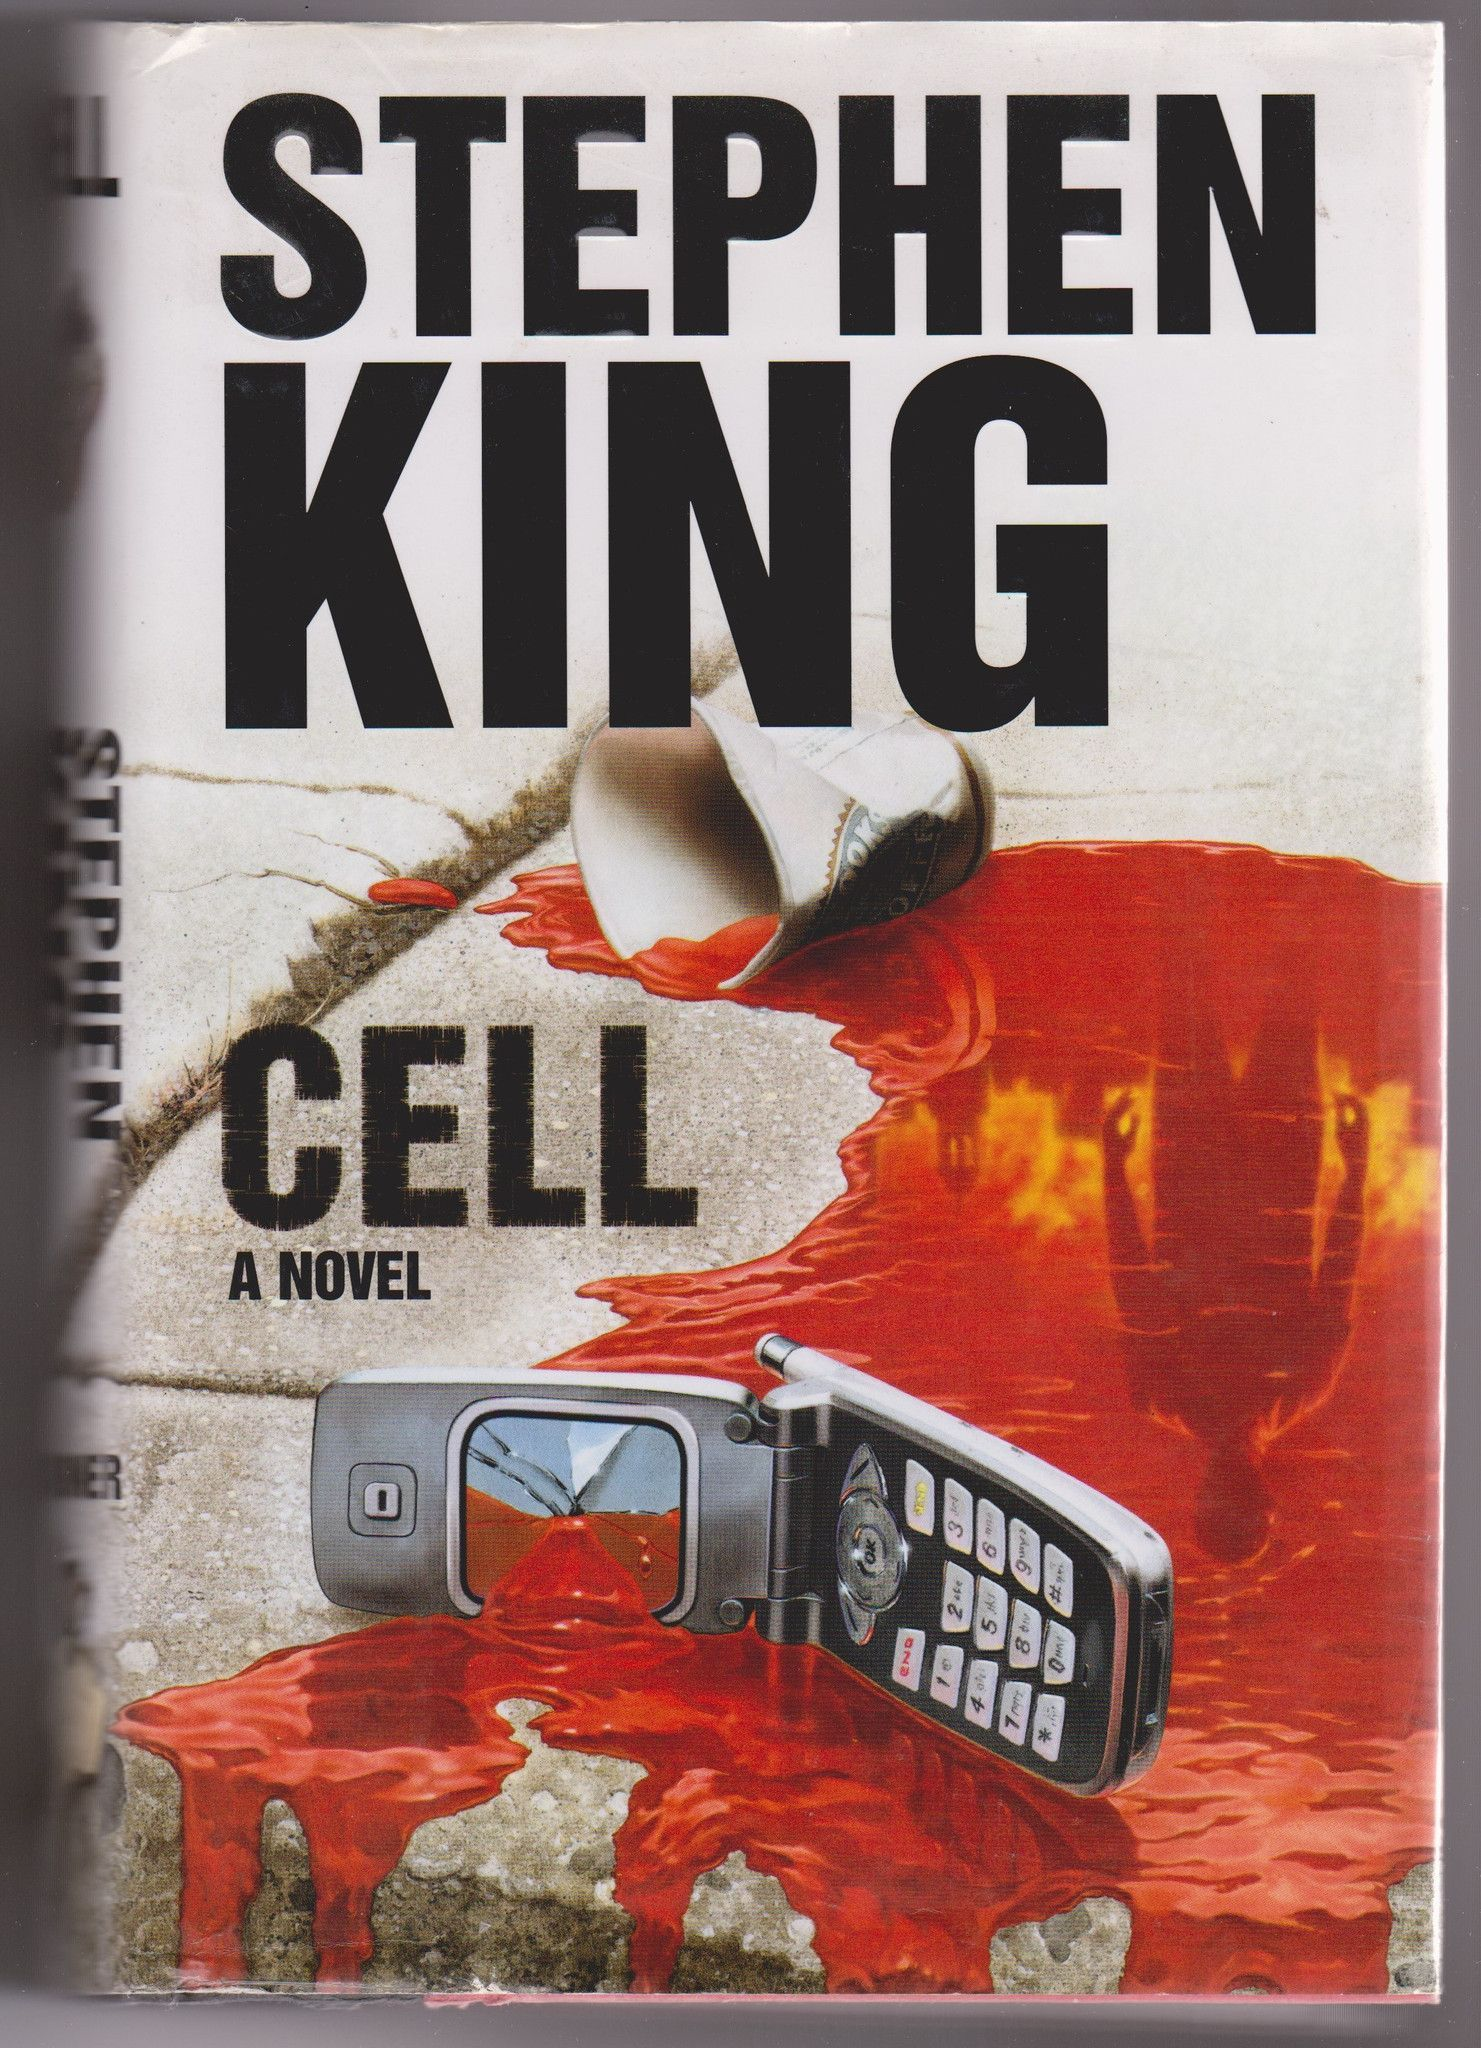 It Stephen King Libro Stephen King Cell Hardcover Used Books Covers Art